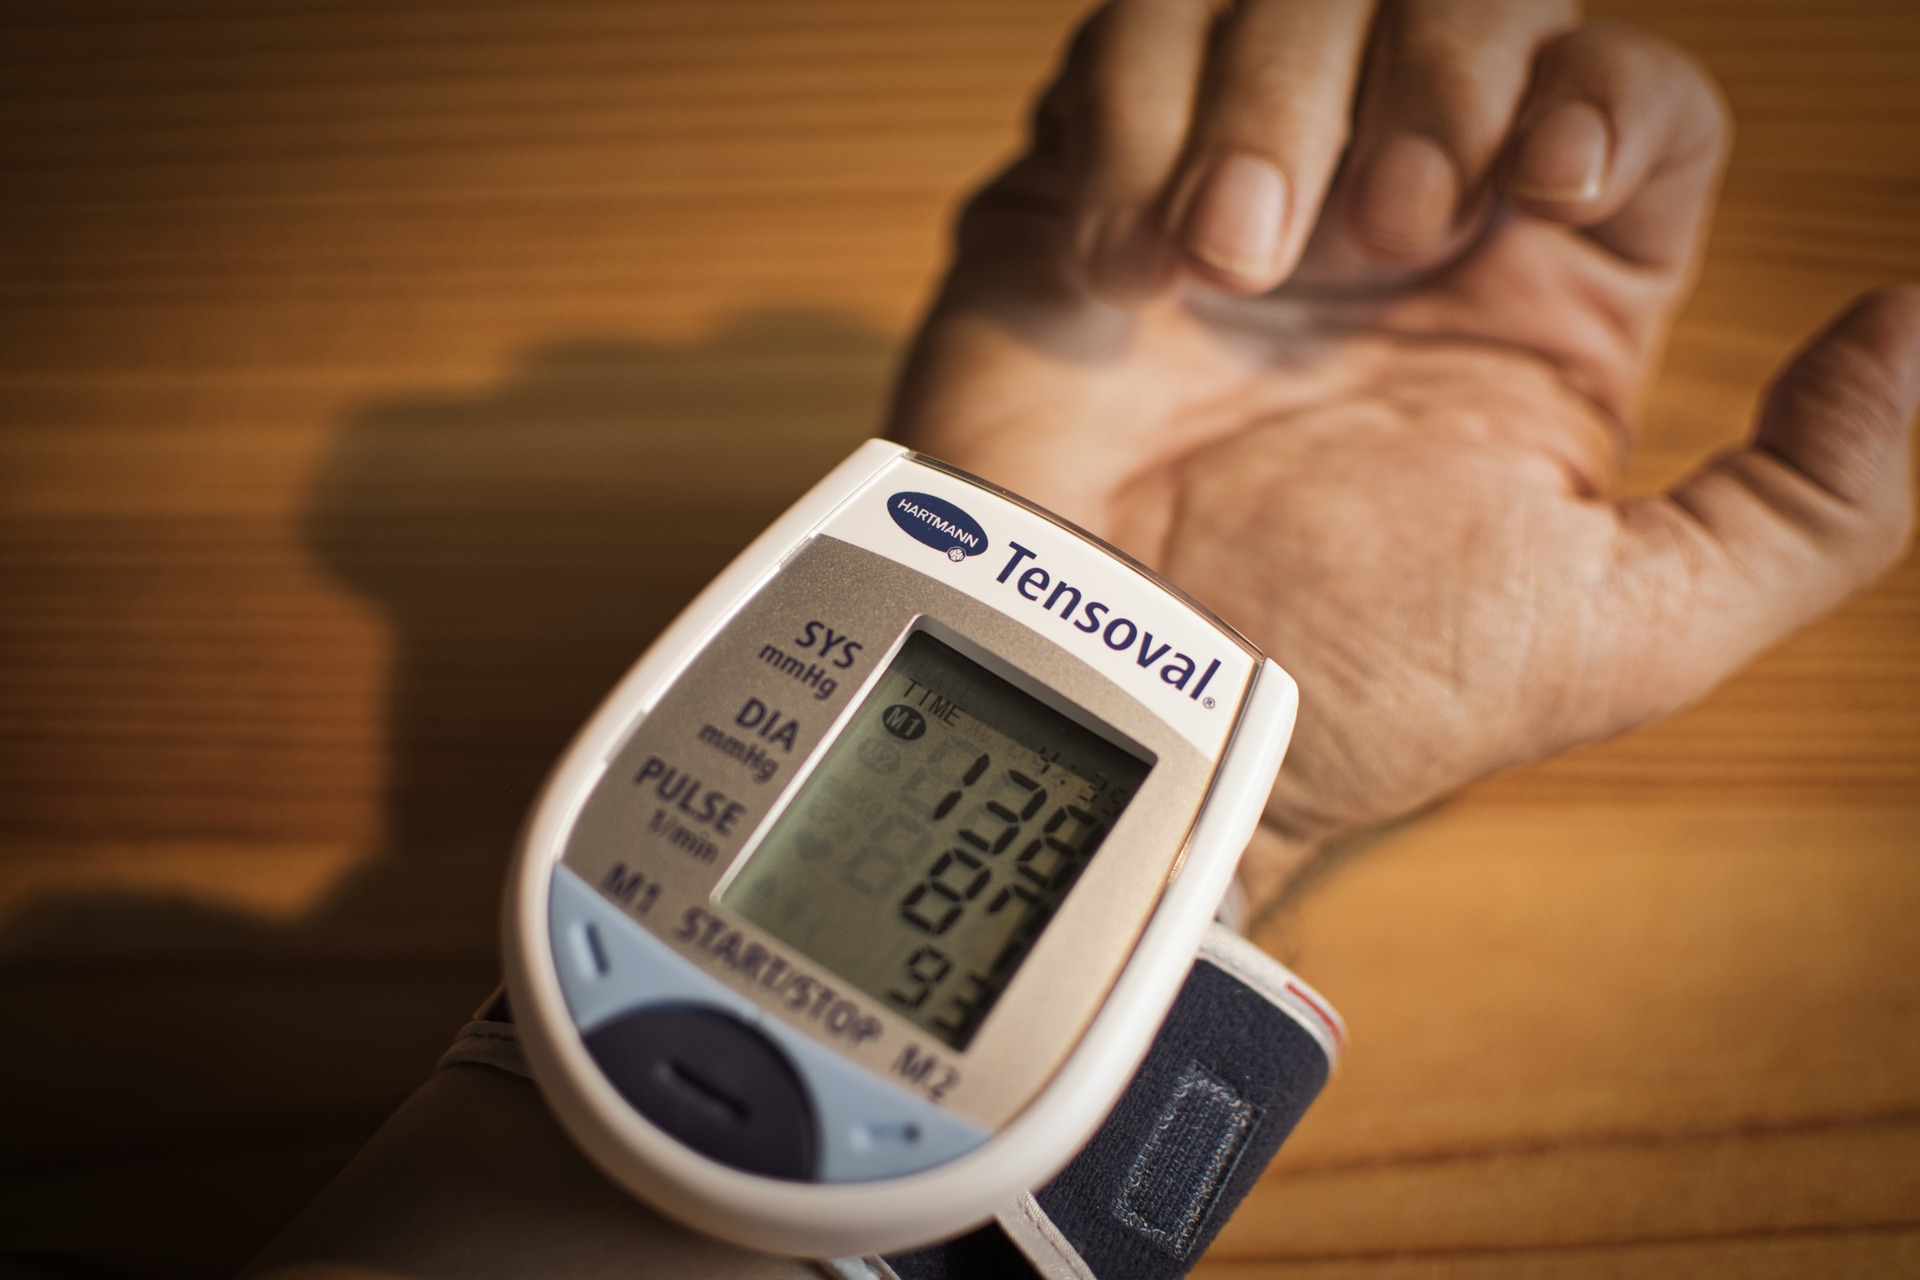 Can obesity cause high blood pressure?